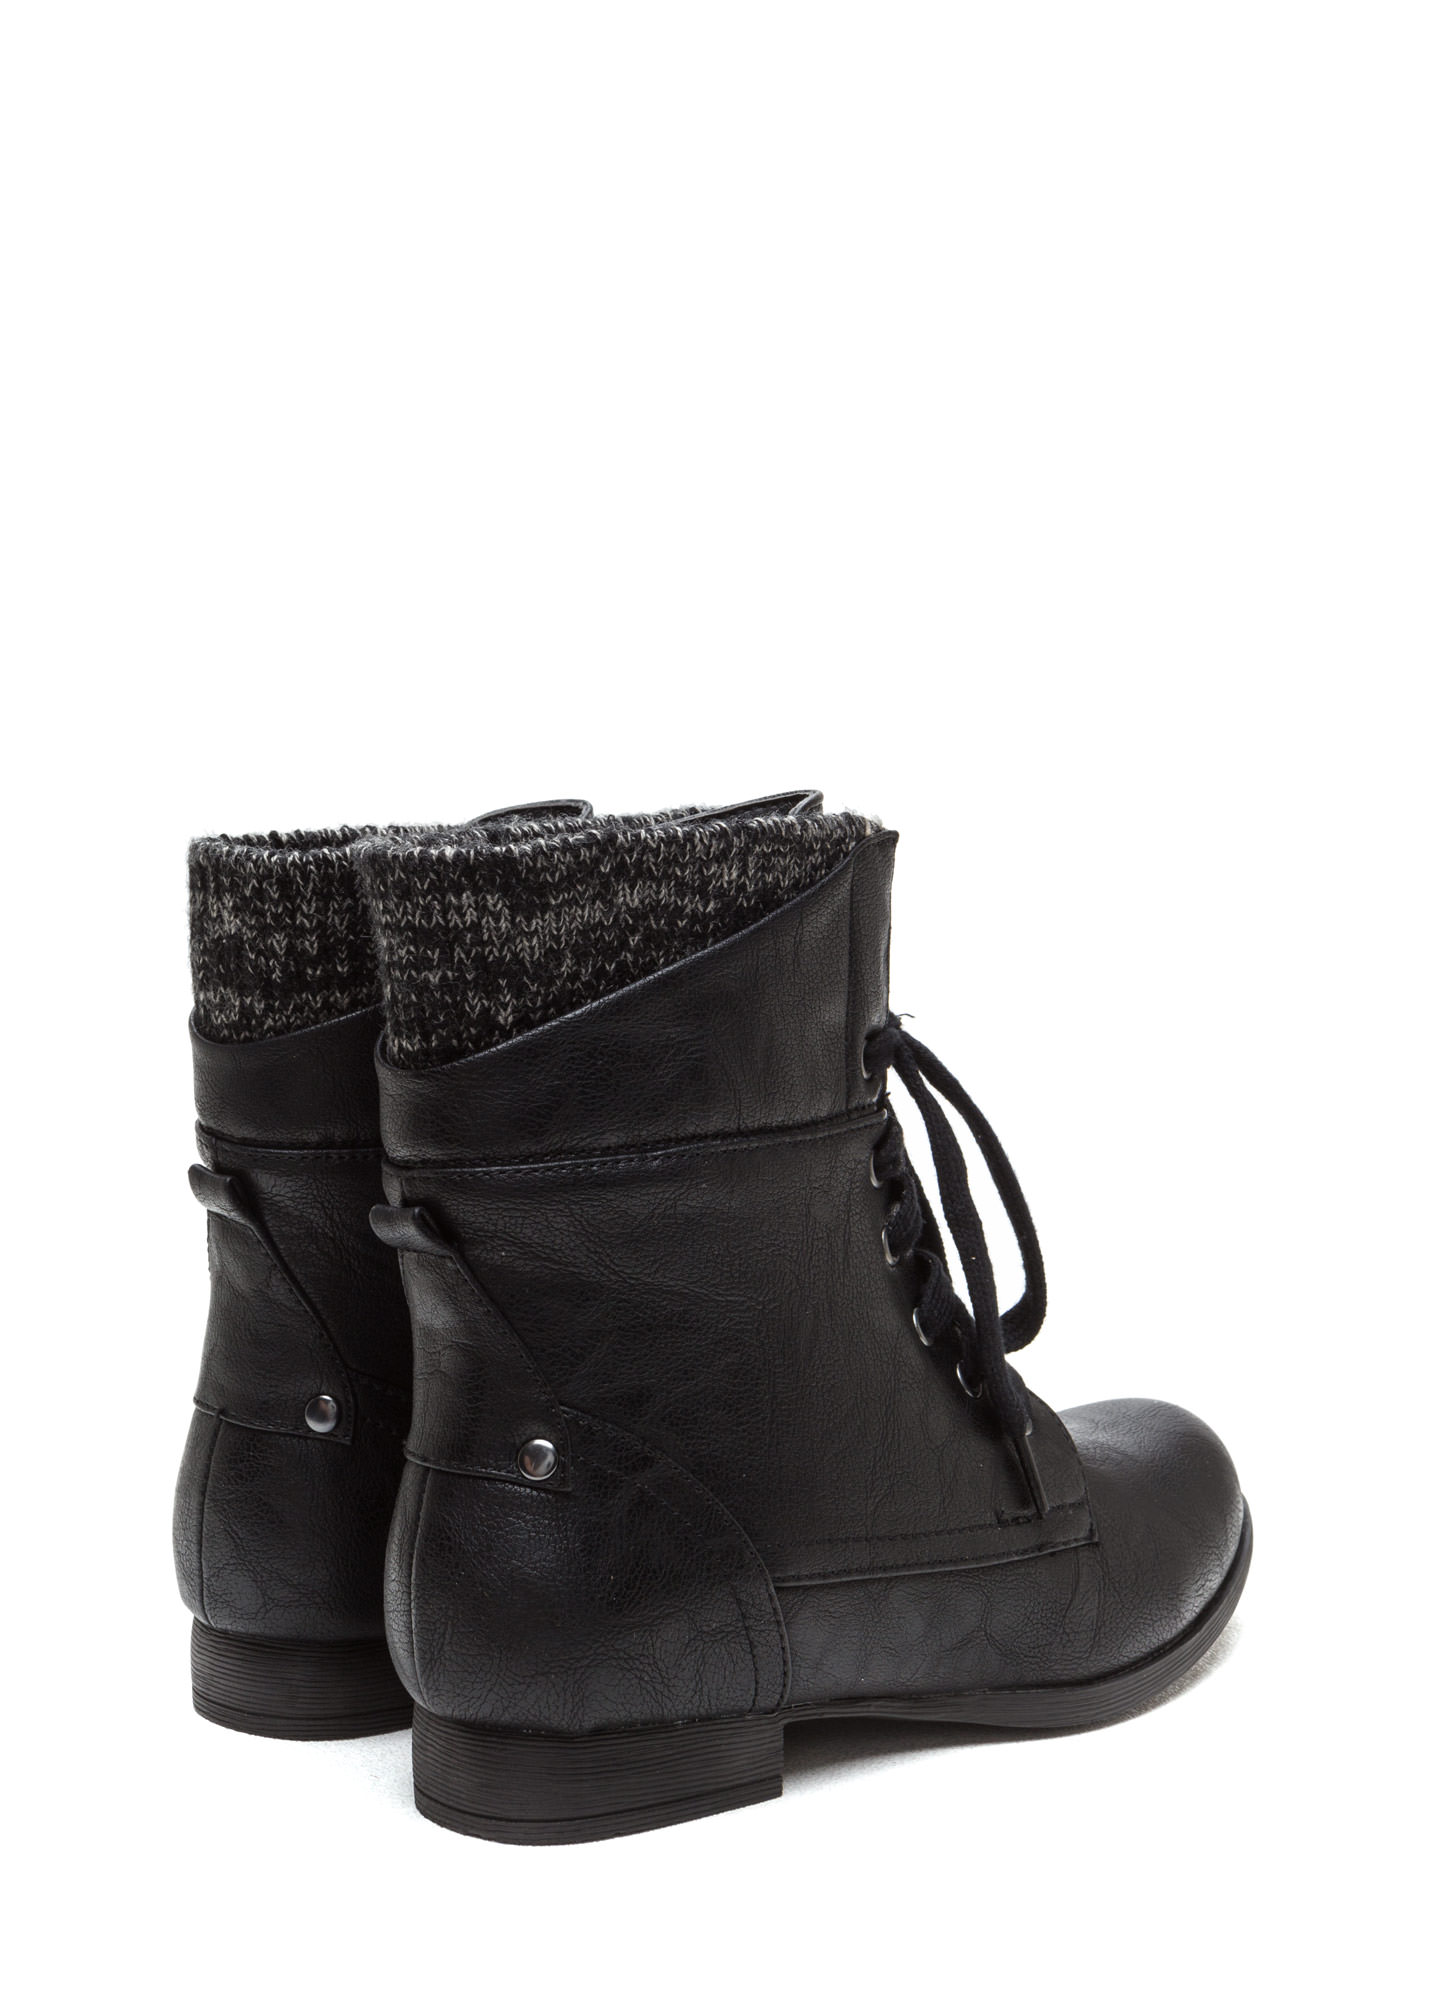 Sweater Weather Cuffed Lace-Up Boots BLACK